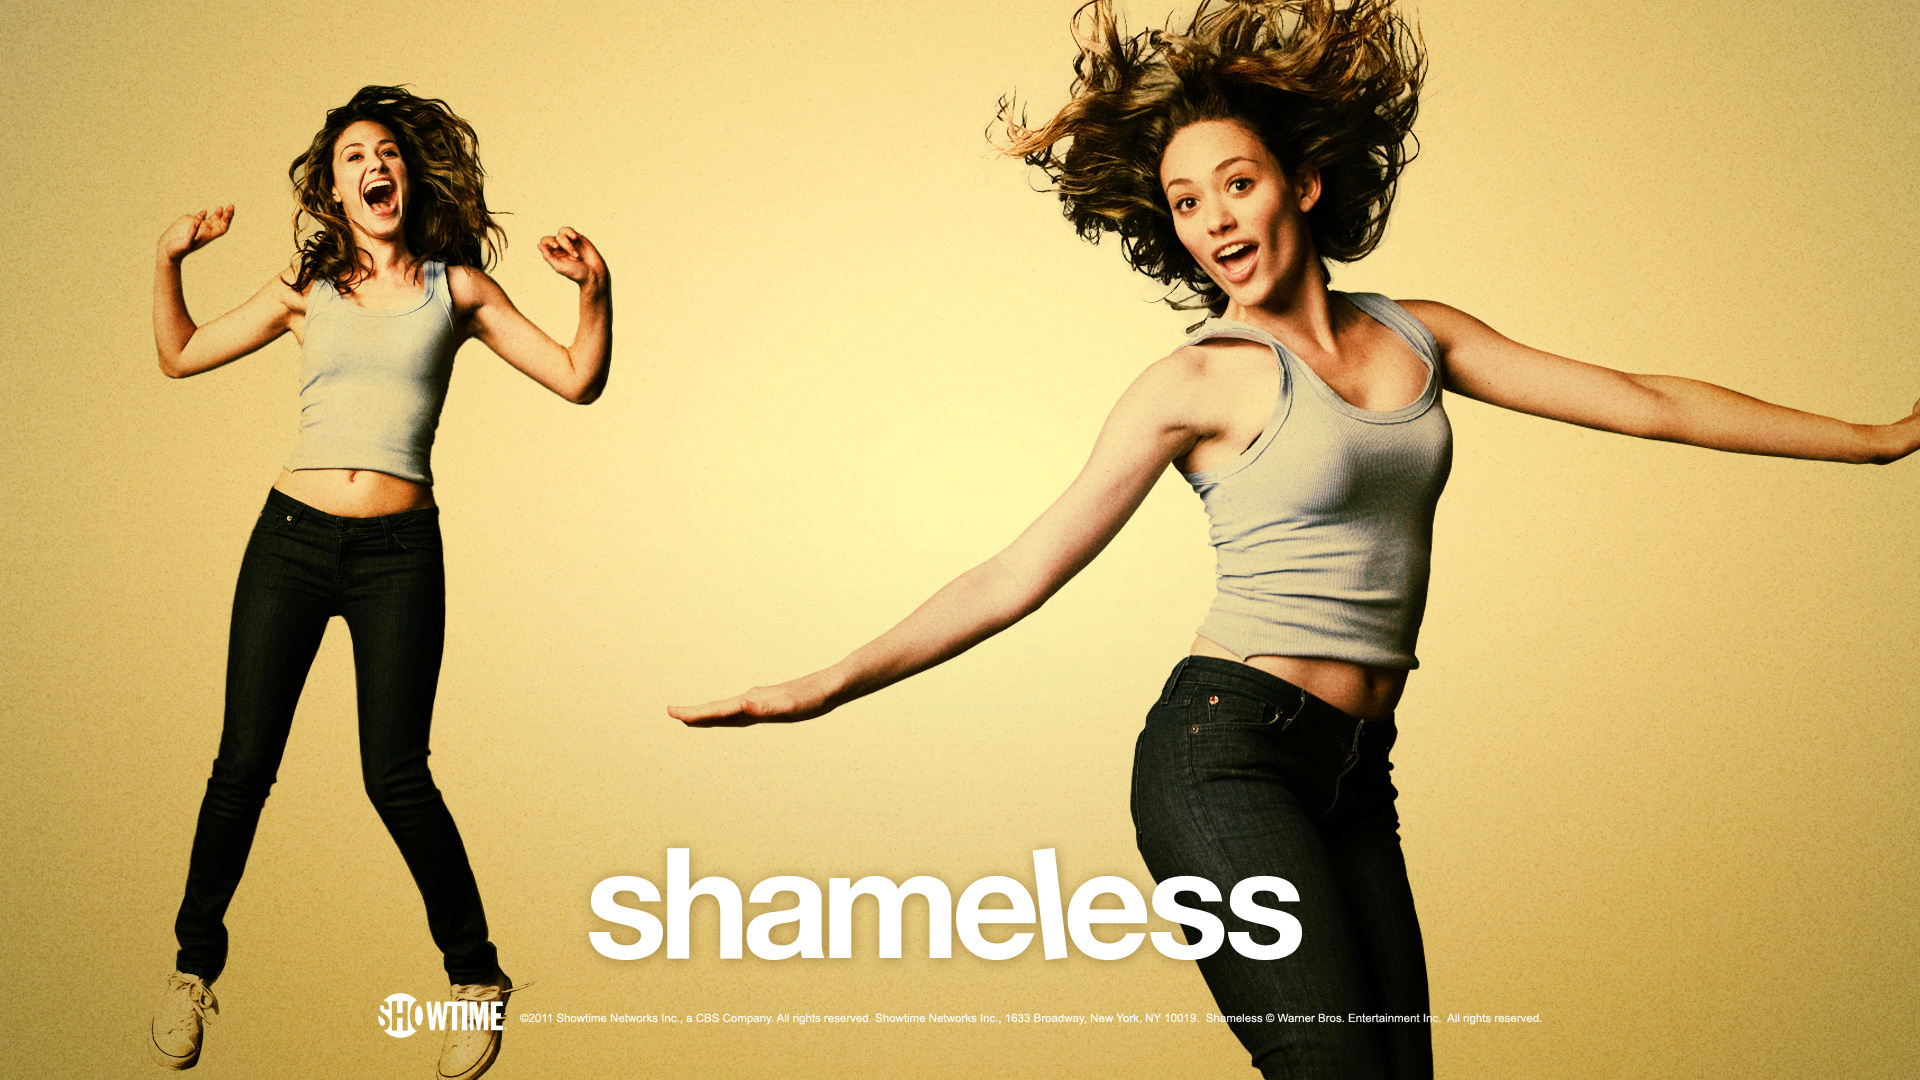 Wallpapers Shameless Us - MaximumWall